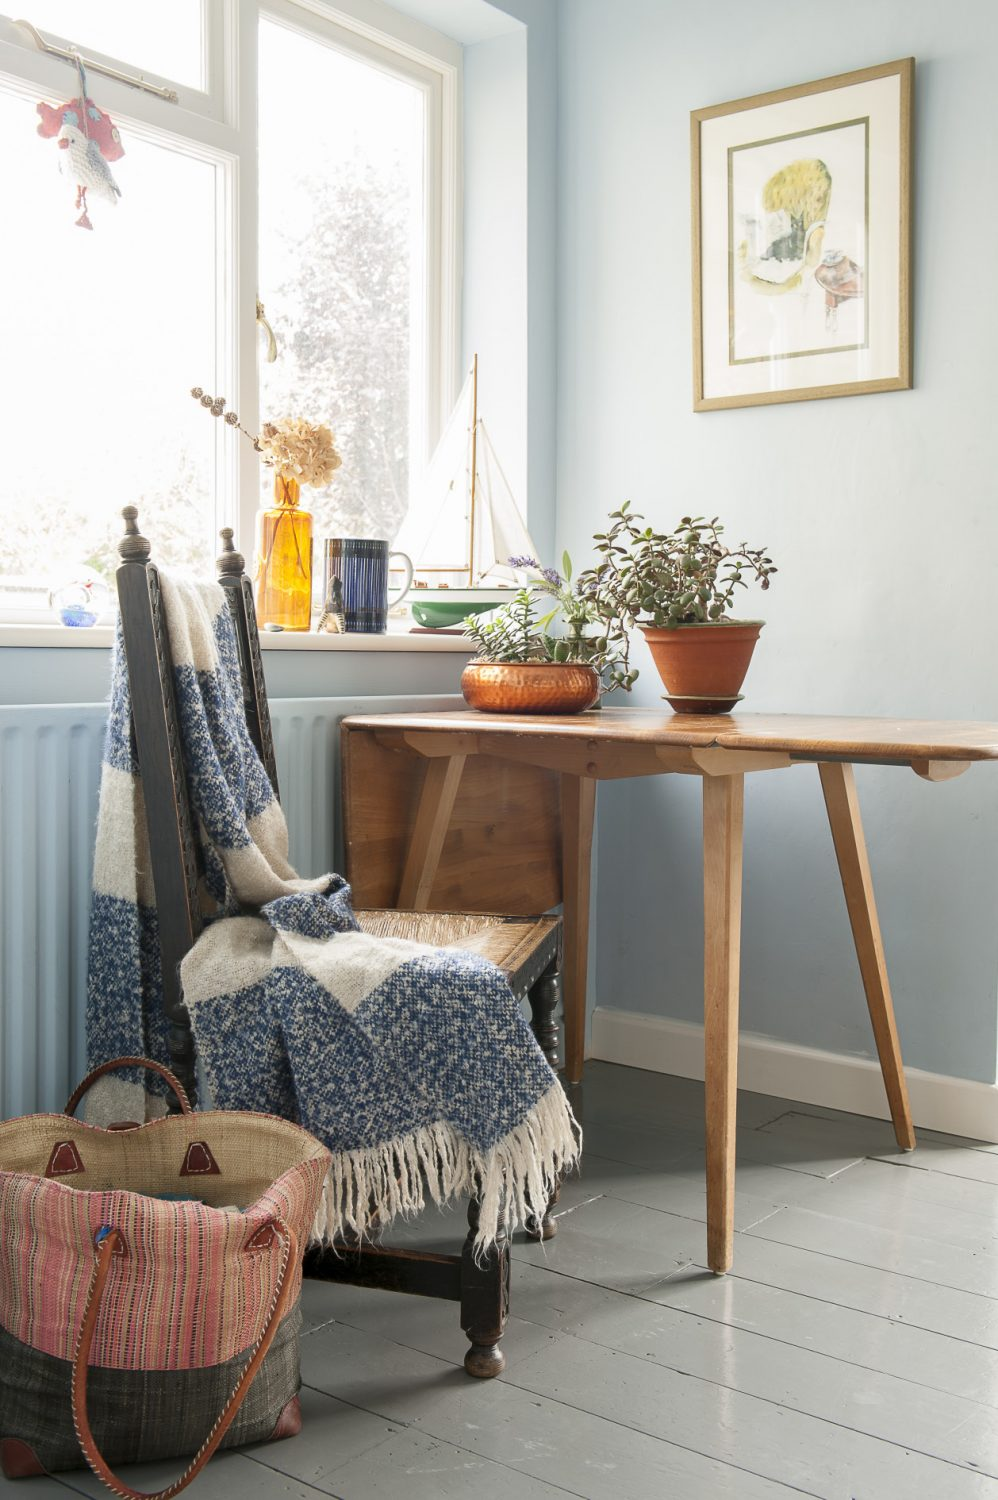 The Ercol table in the kitchen is from Glass Etc in Rye. The shawl was a gift. The watercolour of Louise's grandparents' cat Bumper was painted by her grandmother, Granny Jean